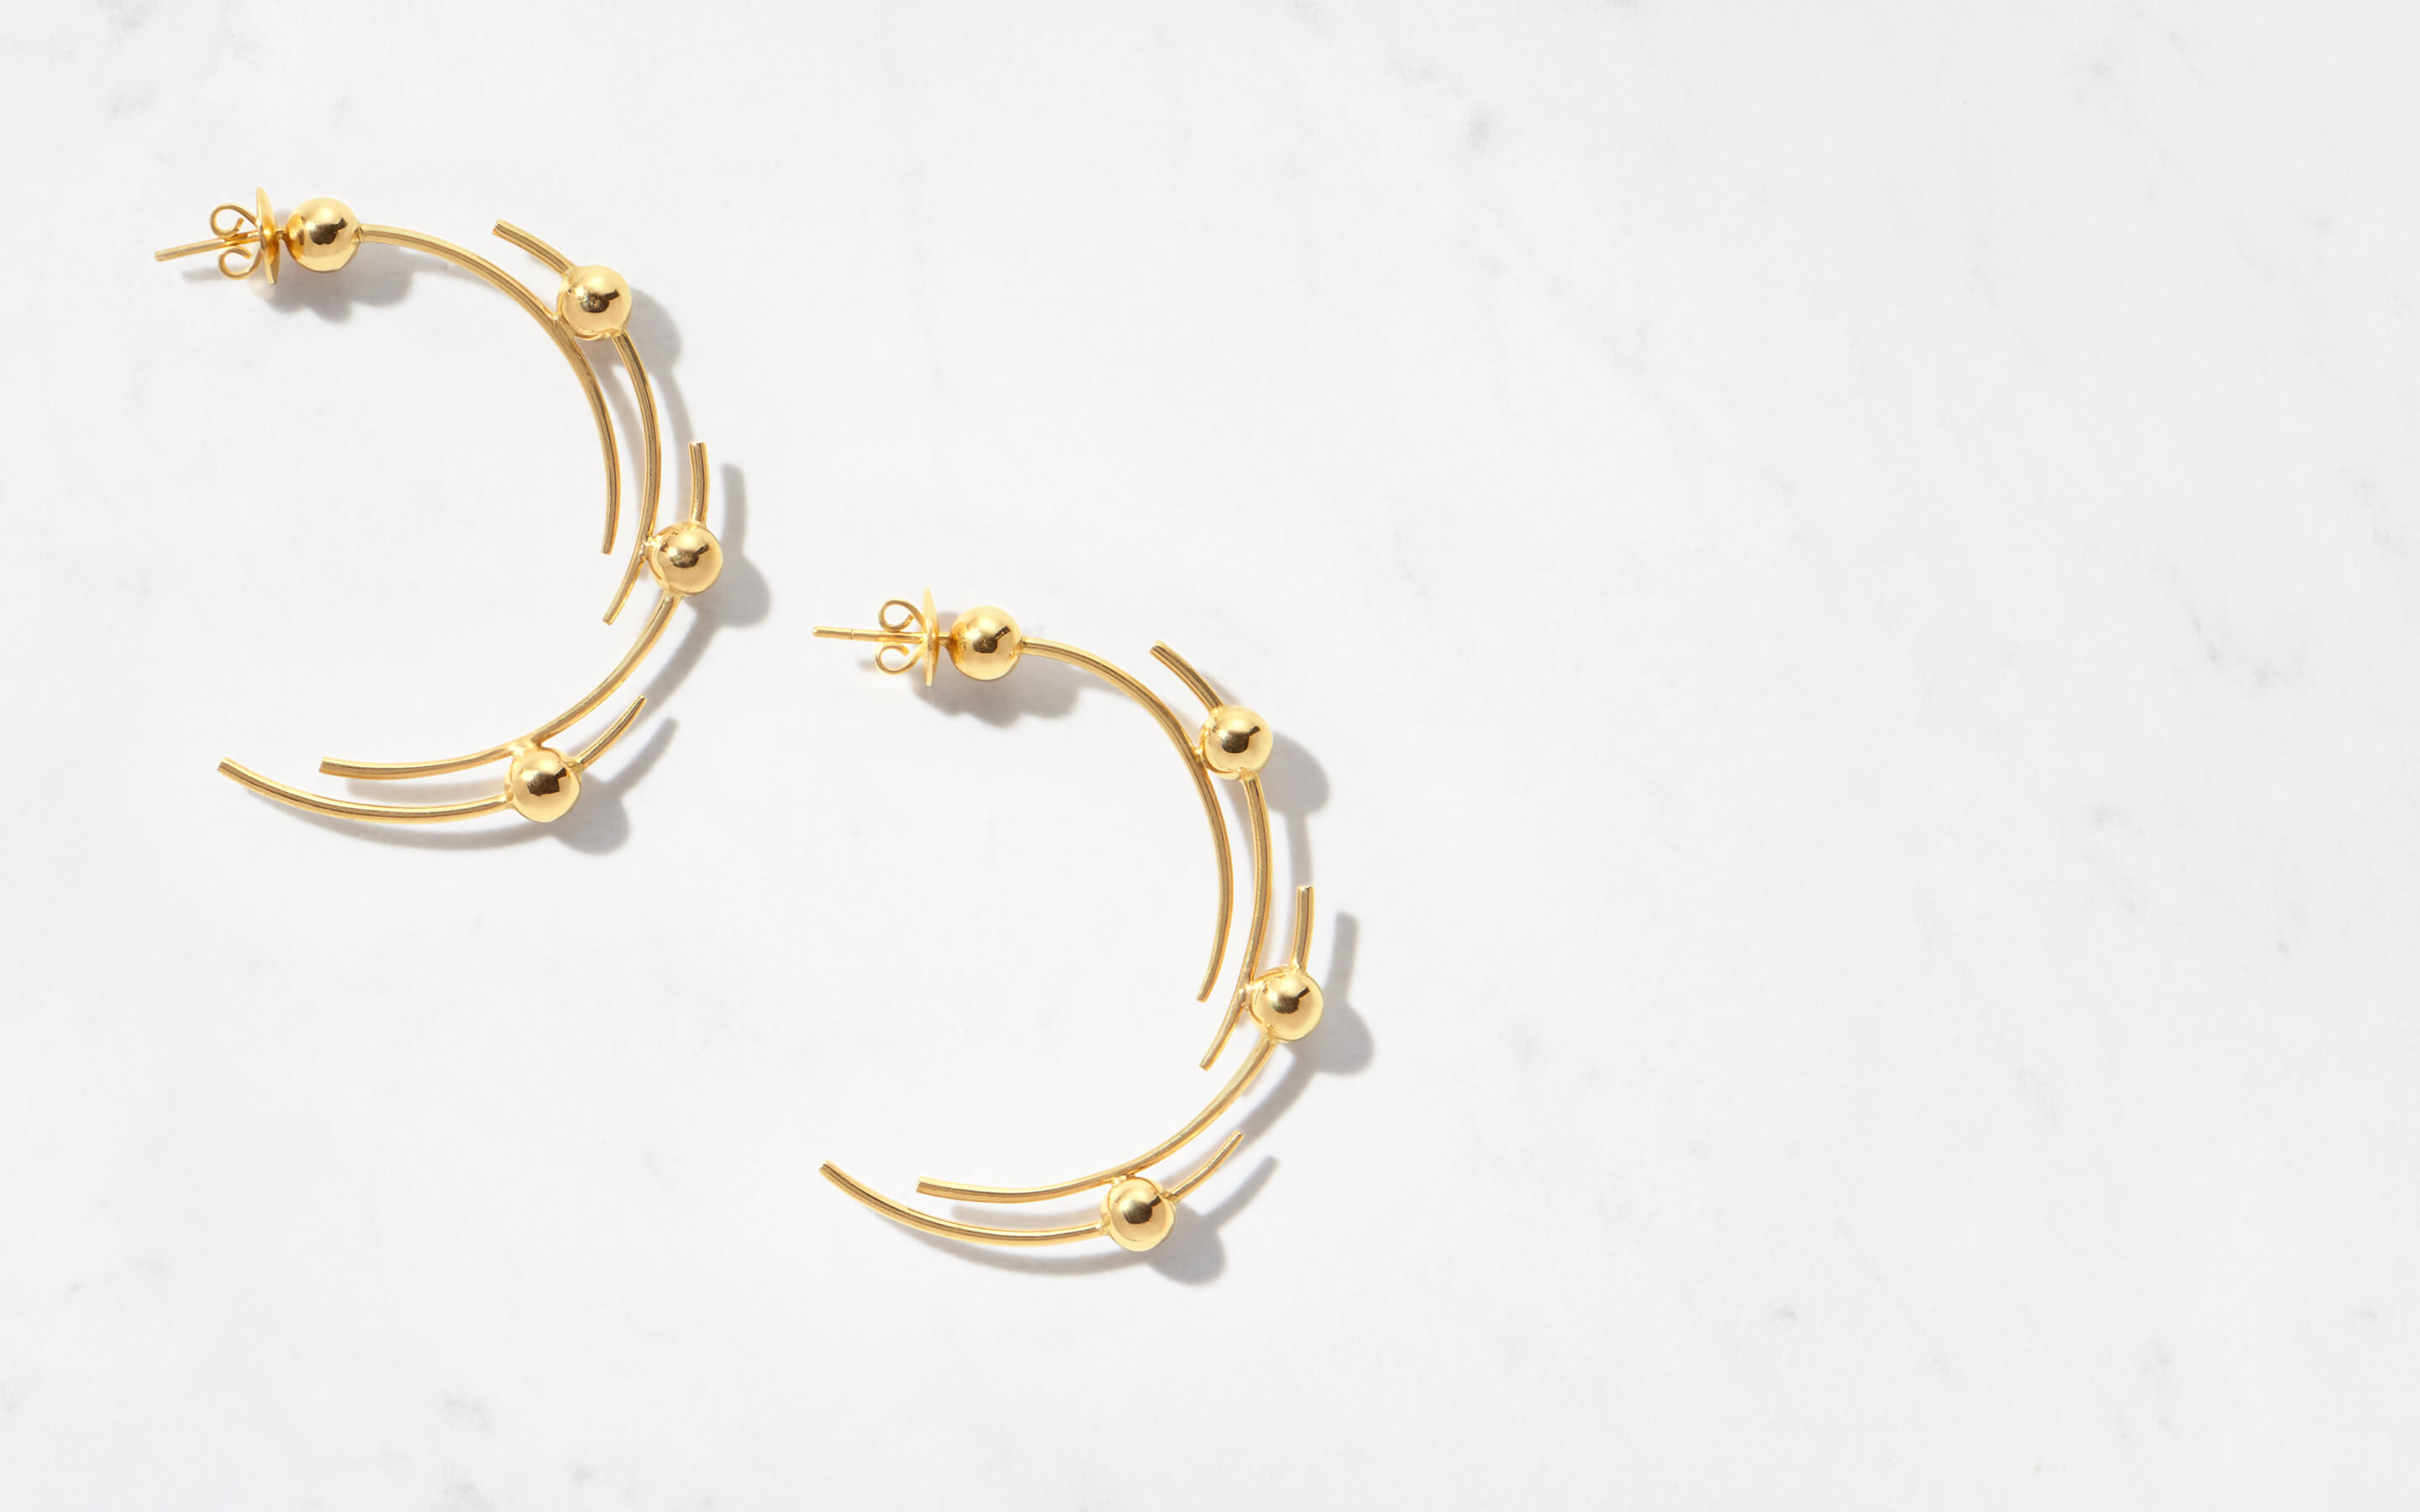 luxurious 22 karat gold earrings made of multiple curves and globes